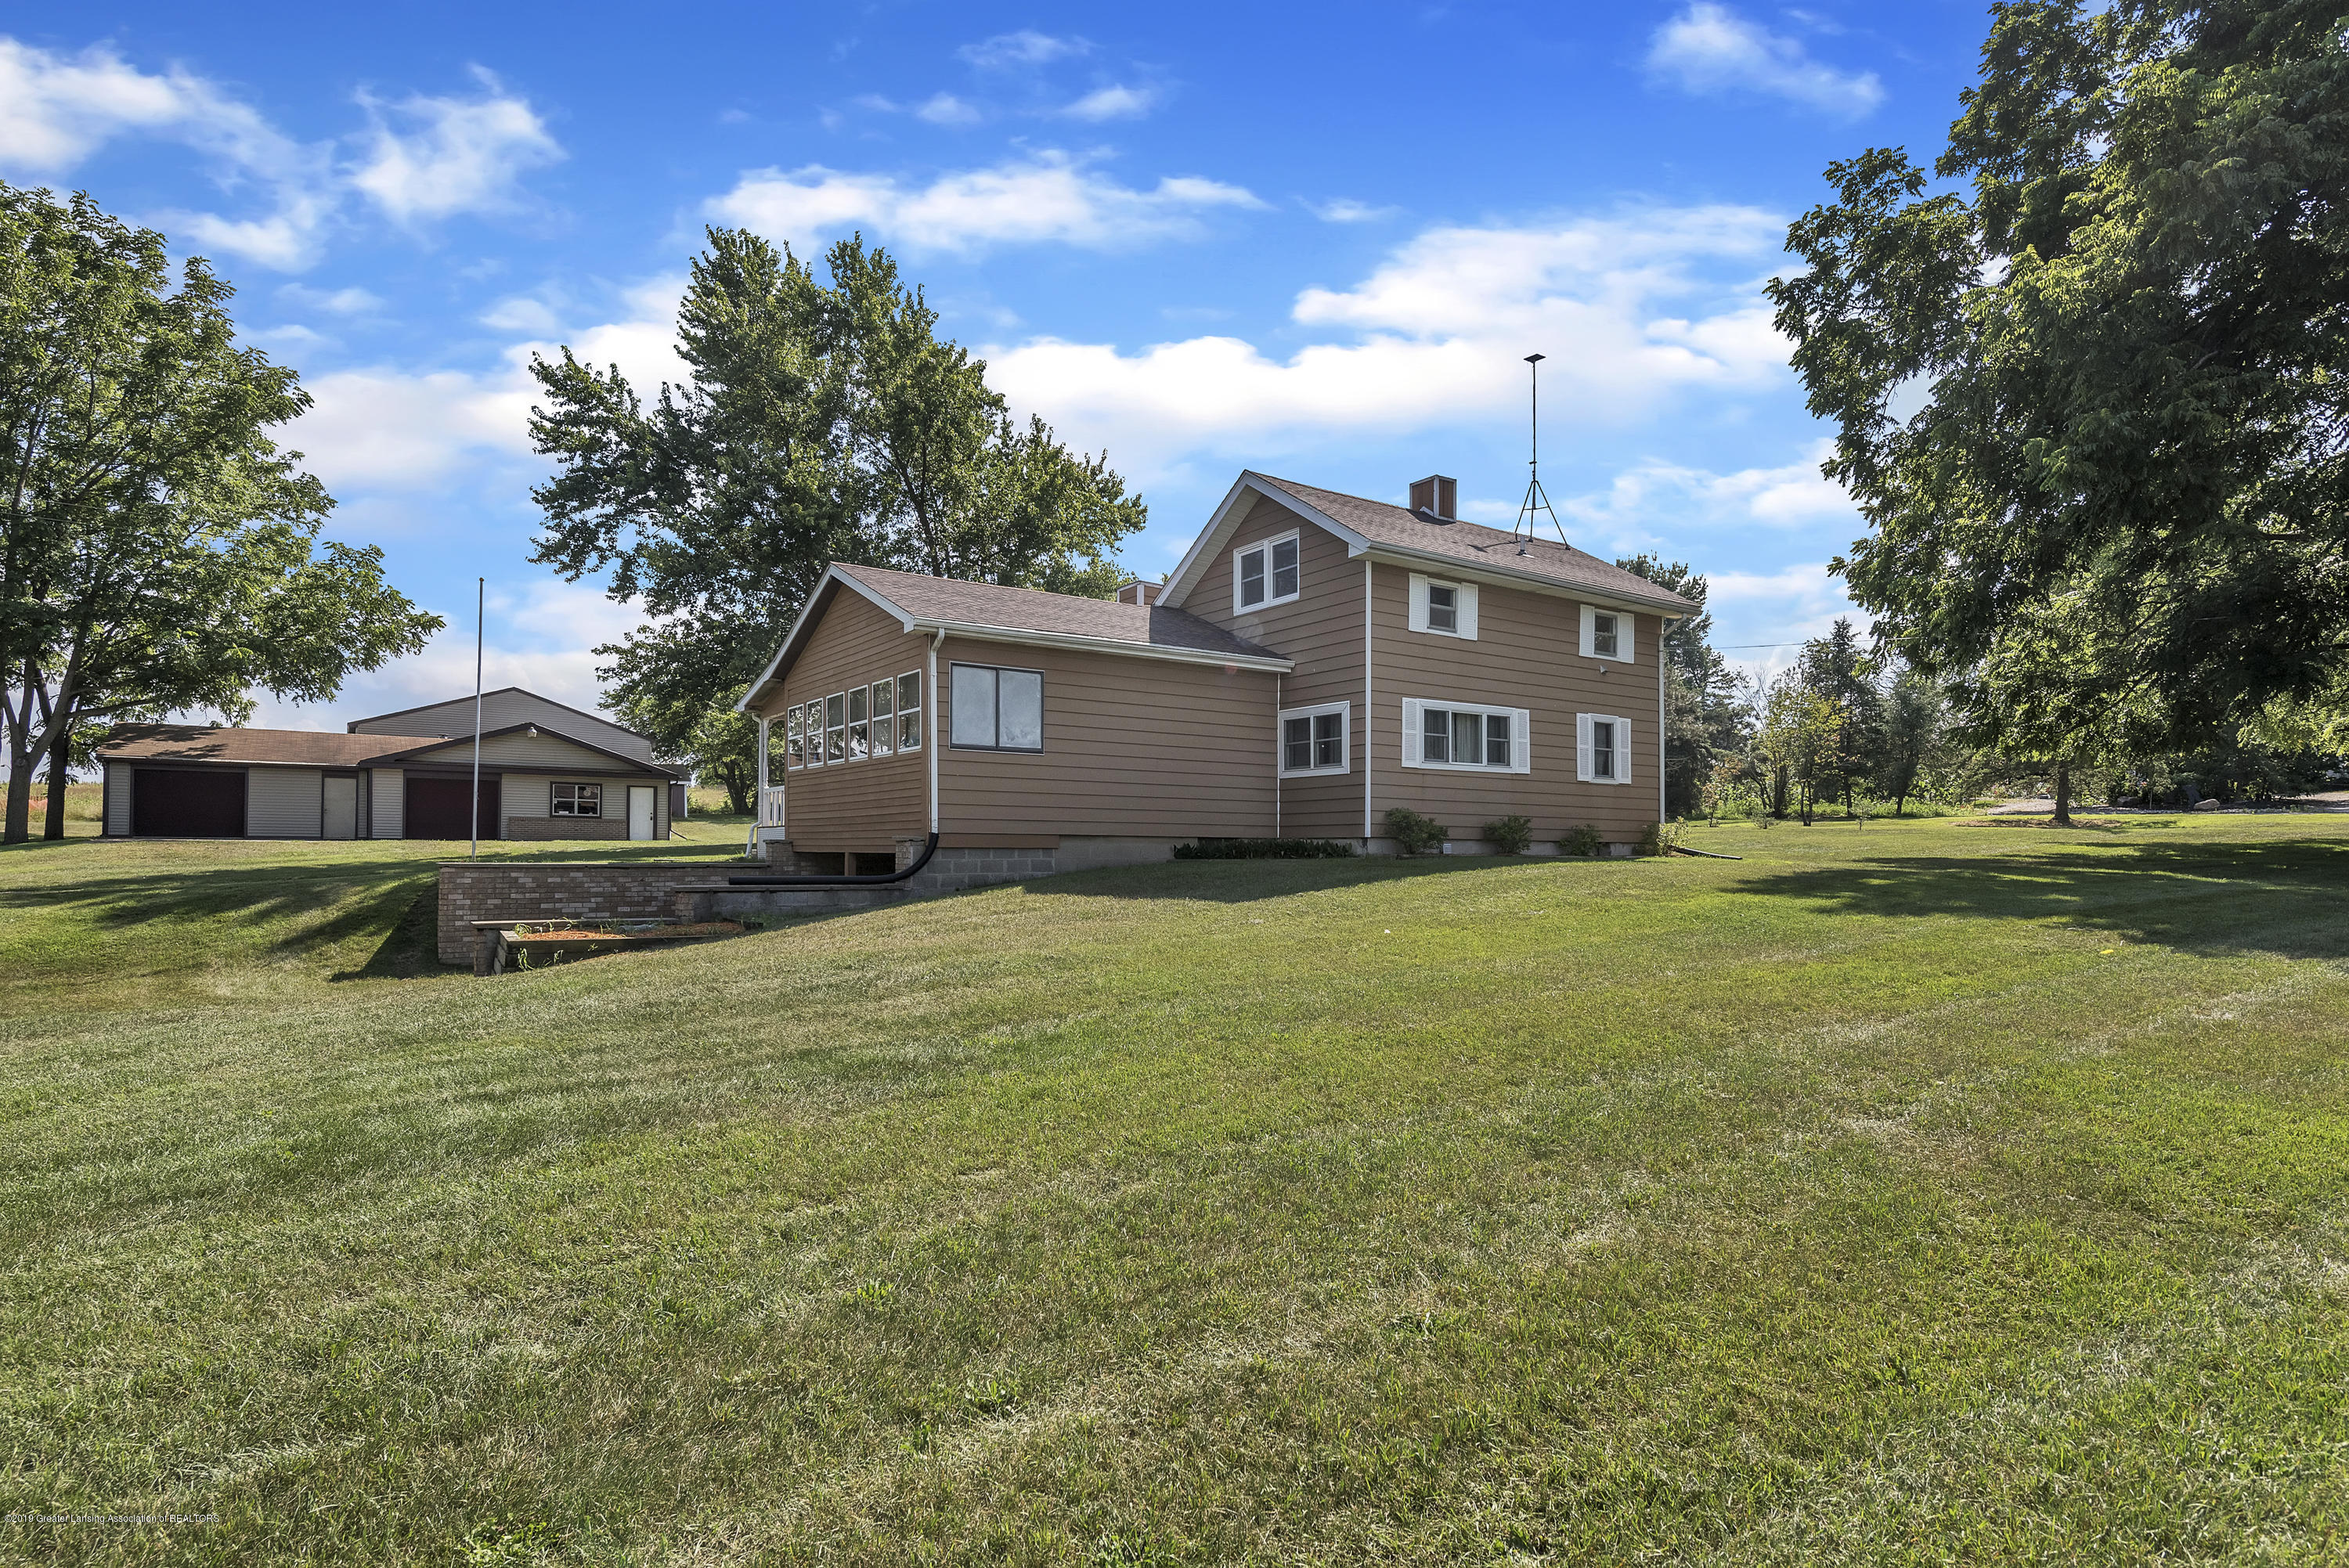 450 Noble Rd - 450-Noble-Rd-Williamston-MI-48895-window - 6